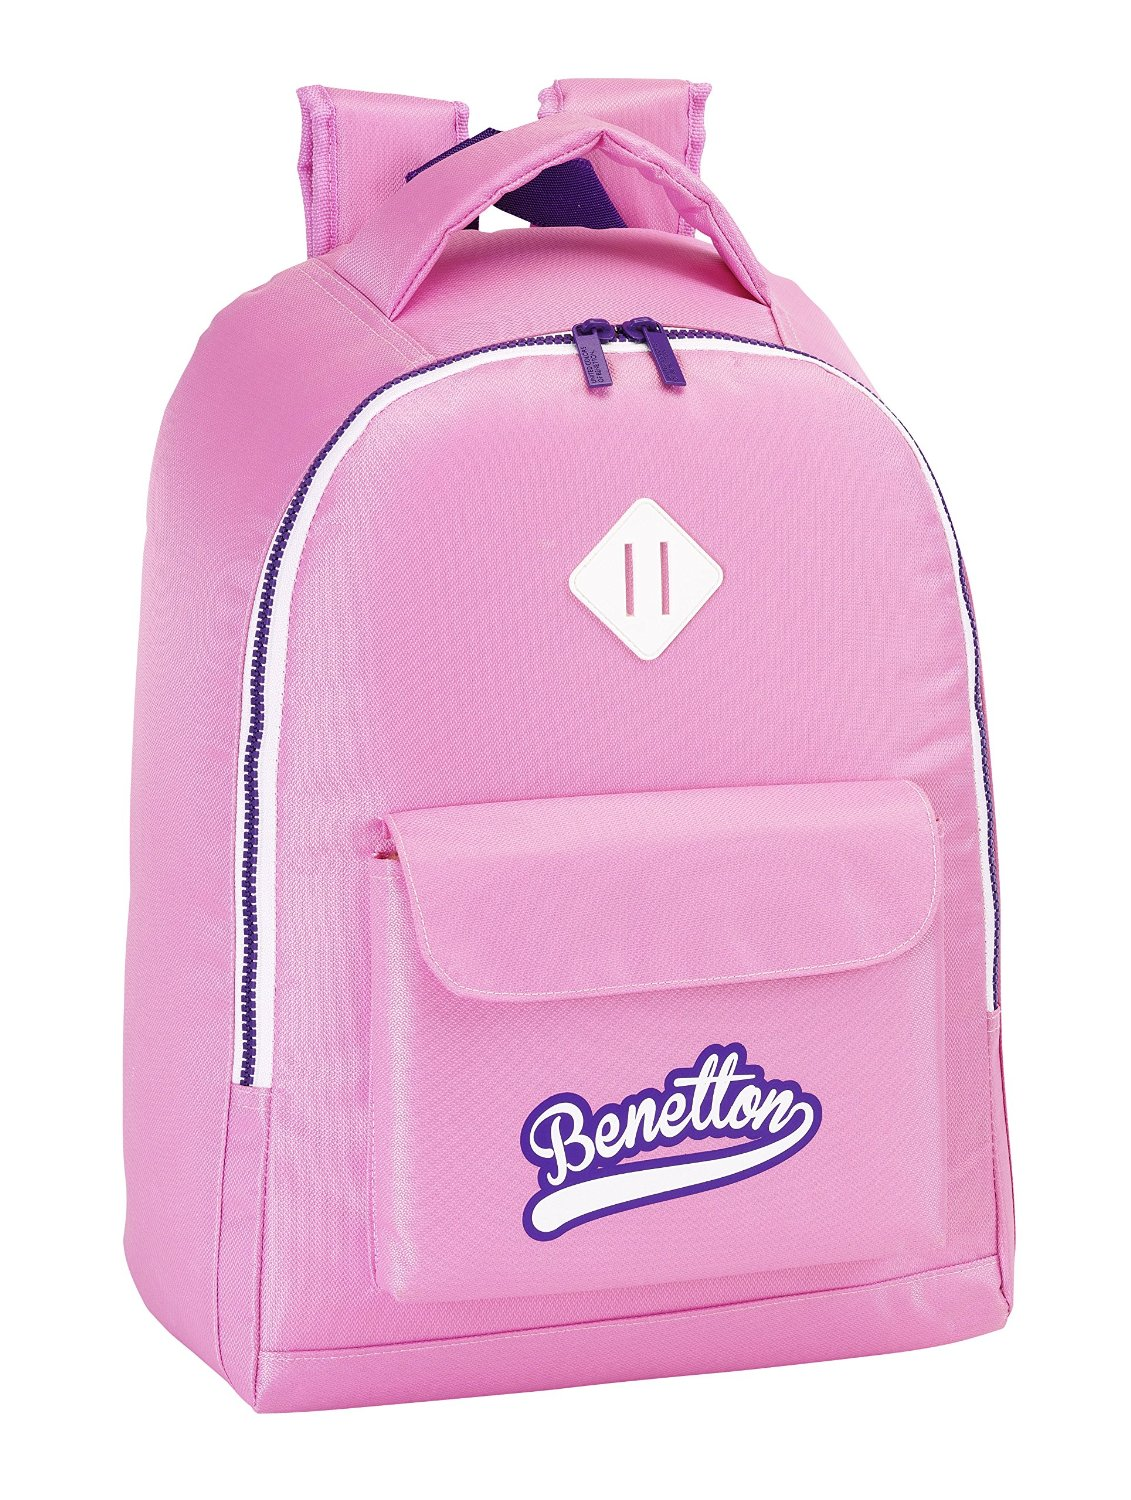 Benetton - Mochila adaptable, 32 x 43 cm, color rosa